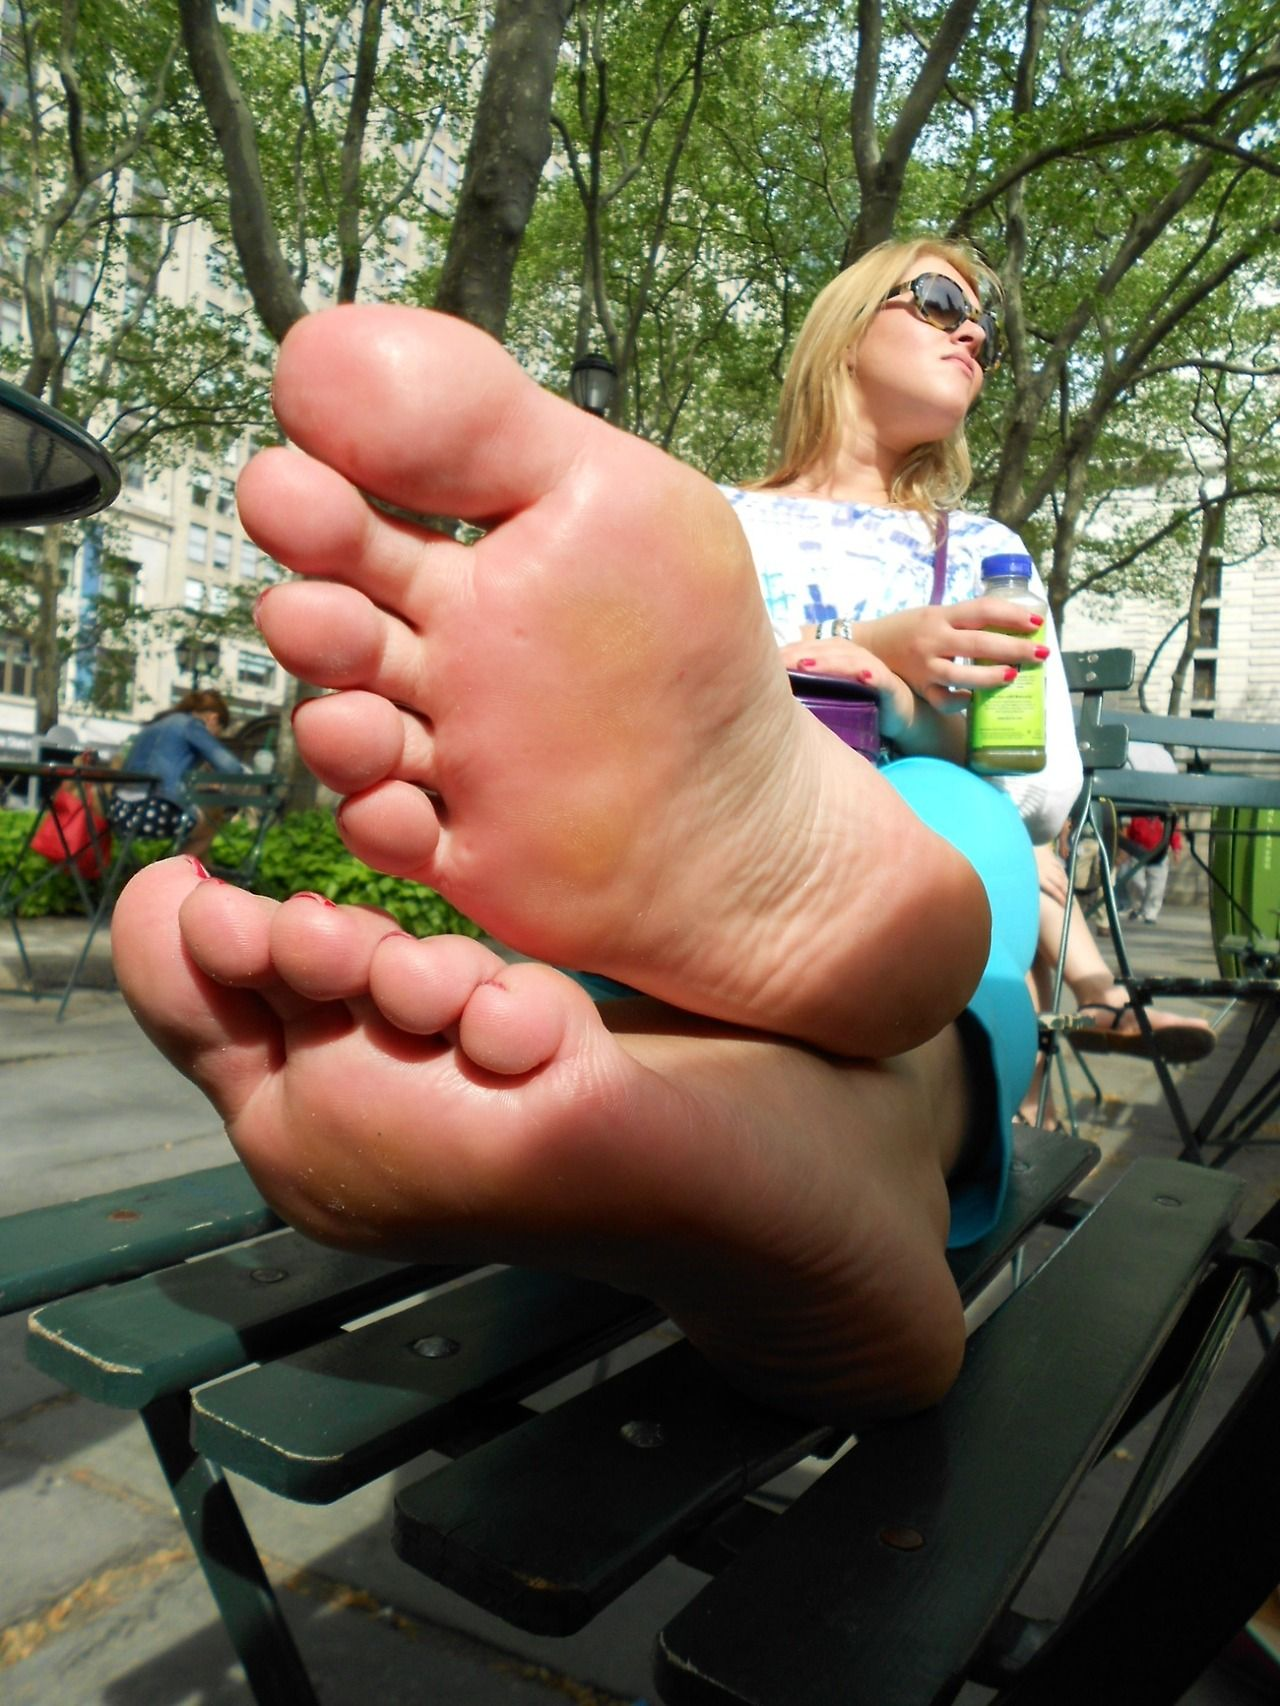 Blonde Showing Her Bare Soles In Public